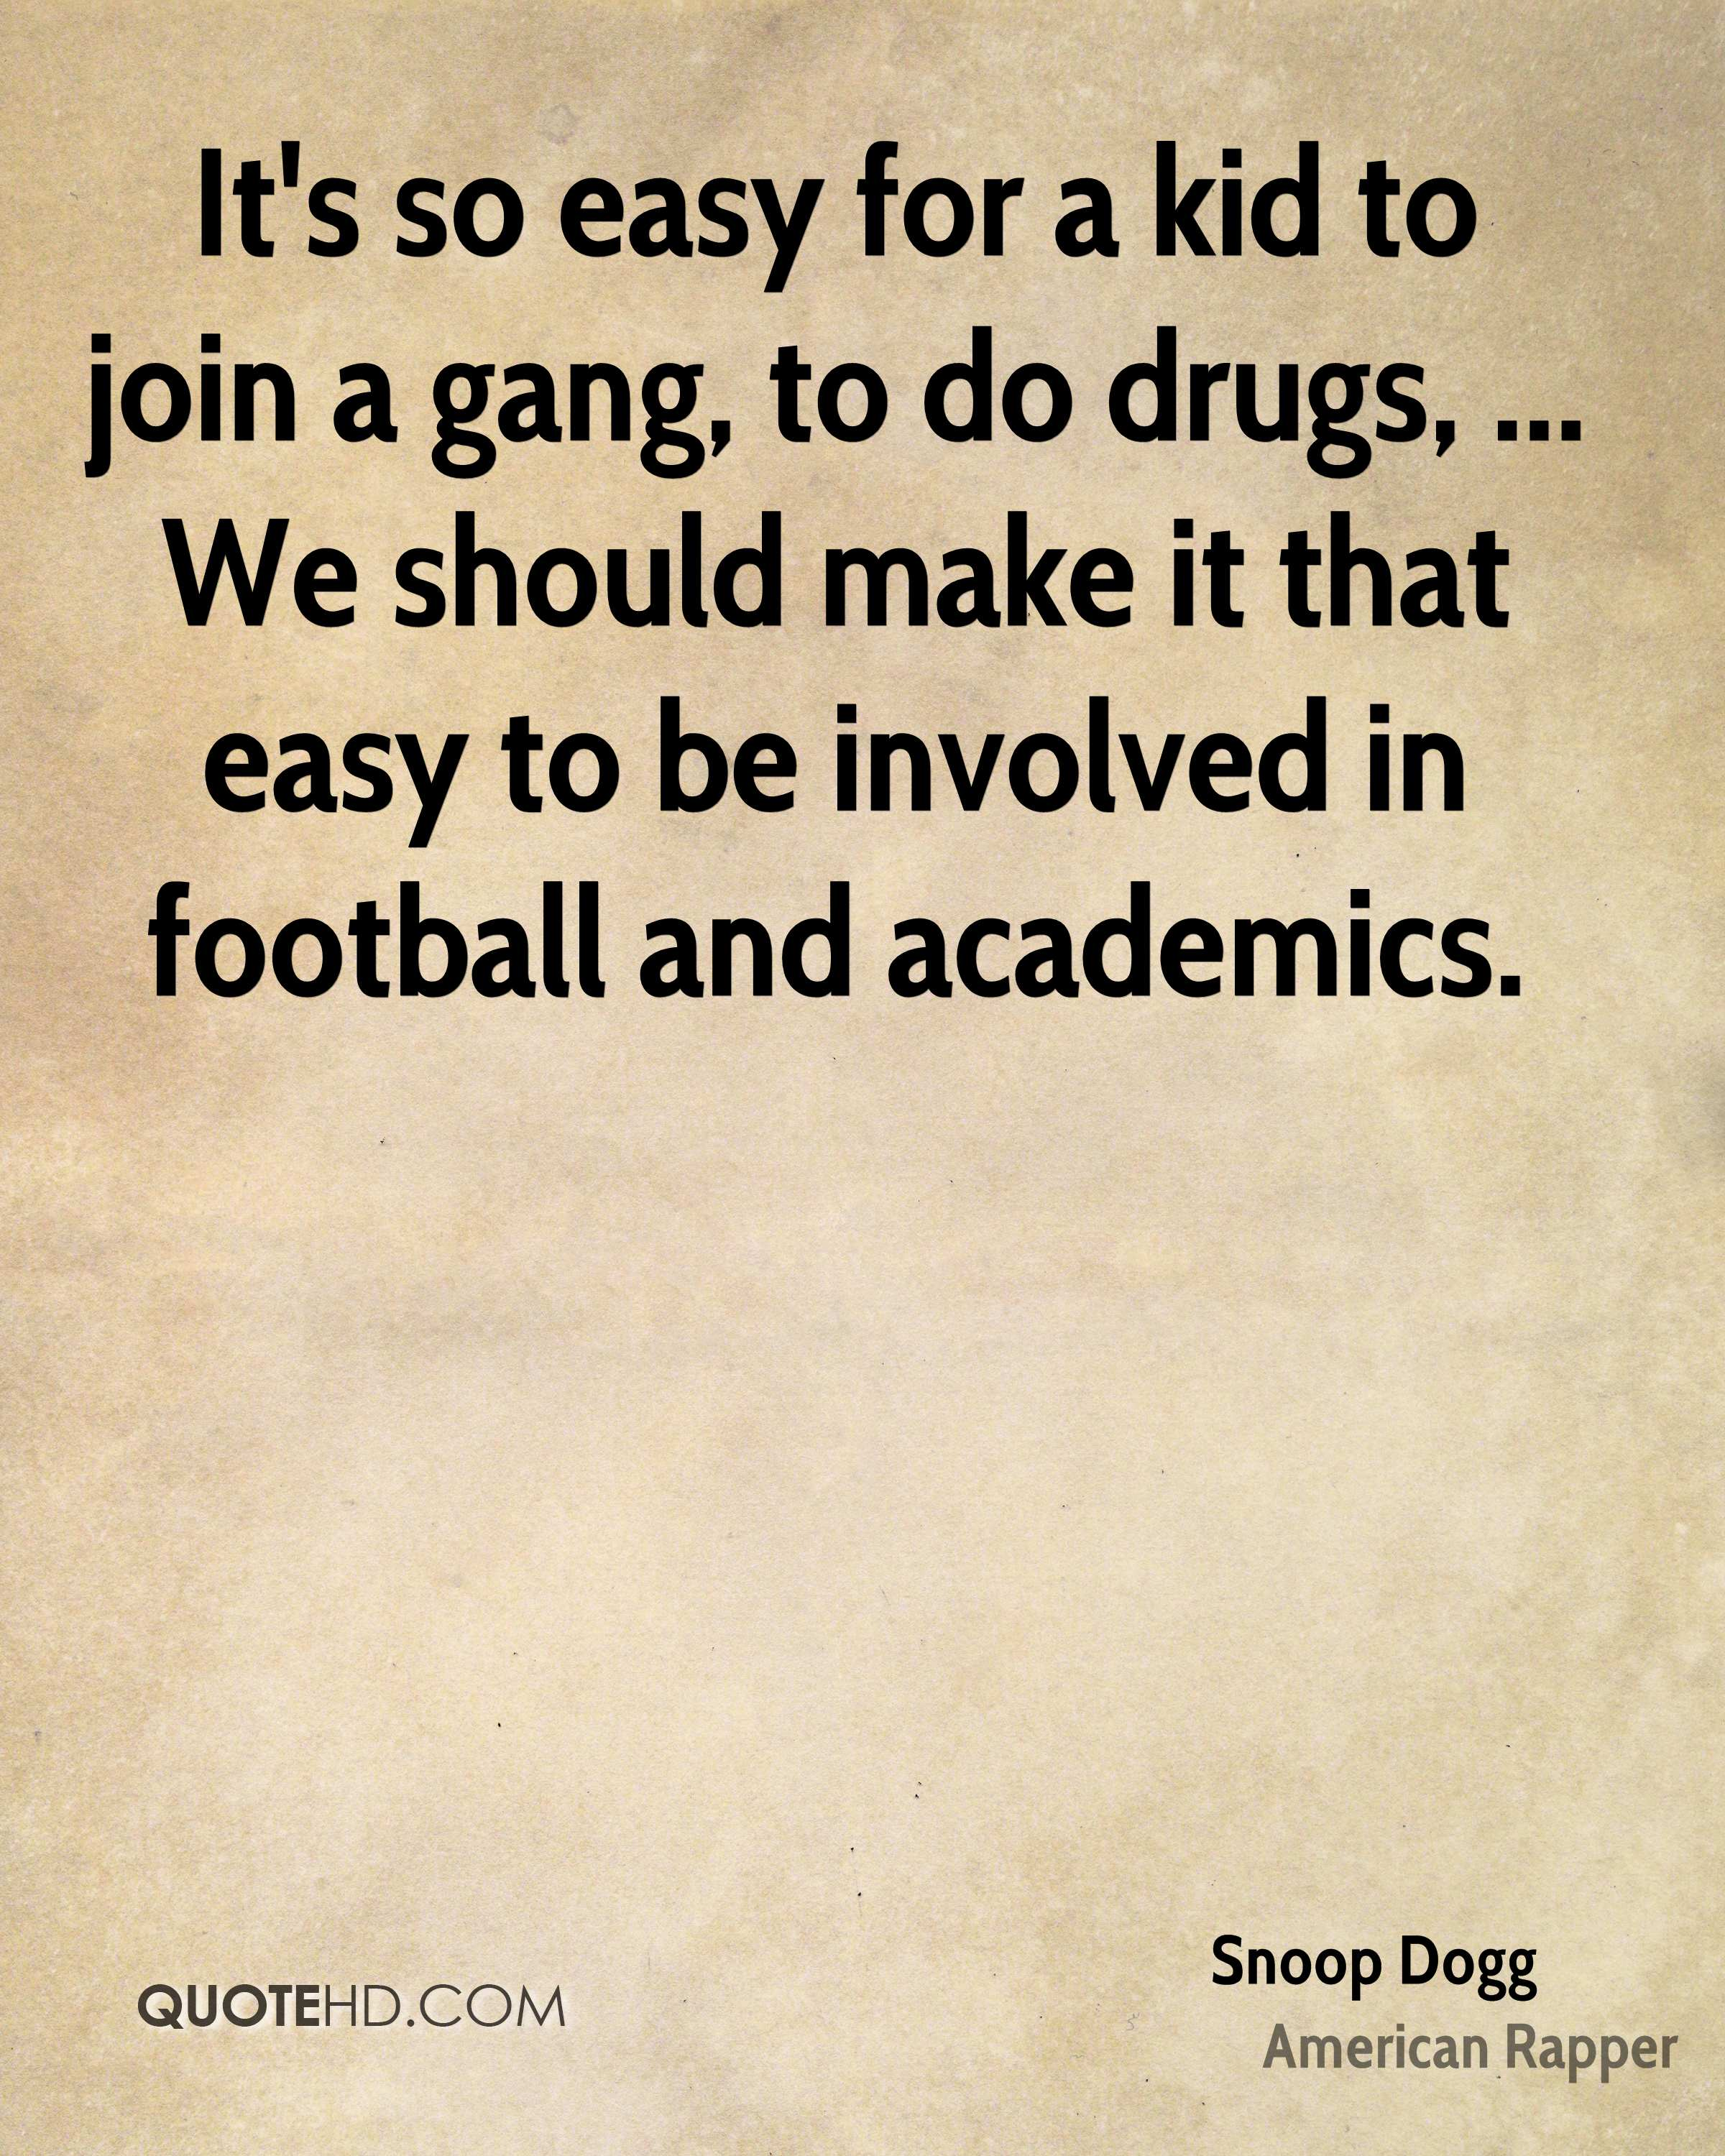 It's so easy for a kid to join a gang, to do drugs, ... We should make it that easy to be involved in football and academics.